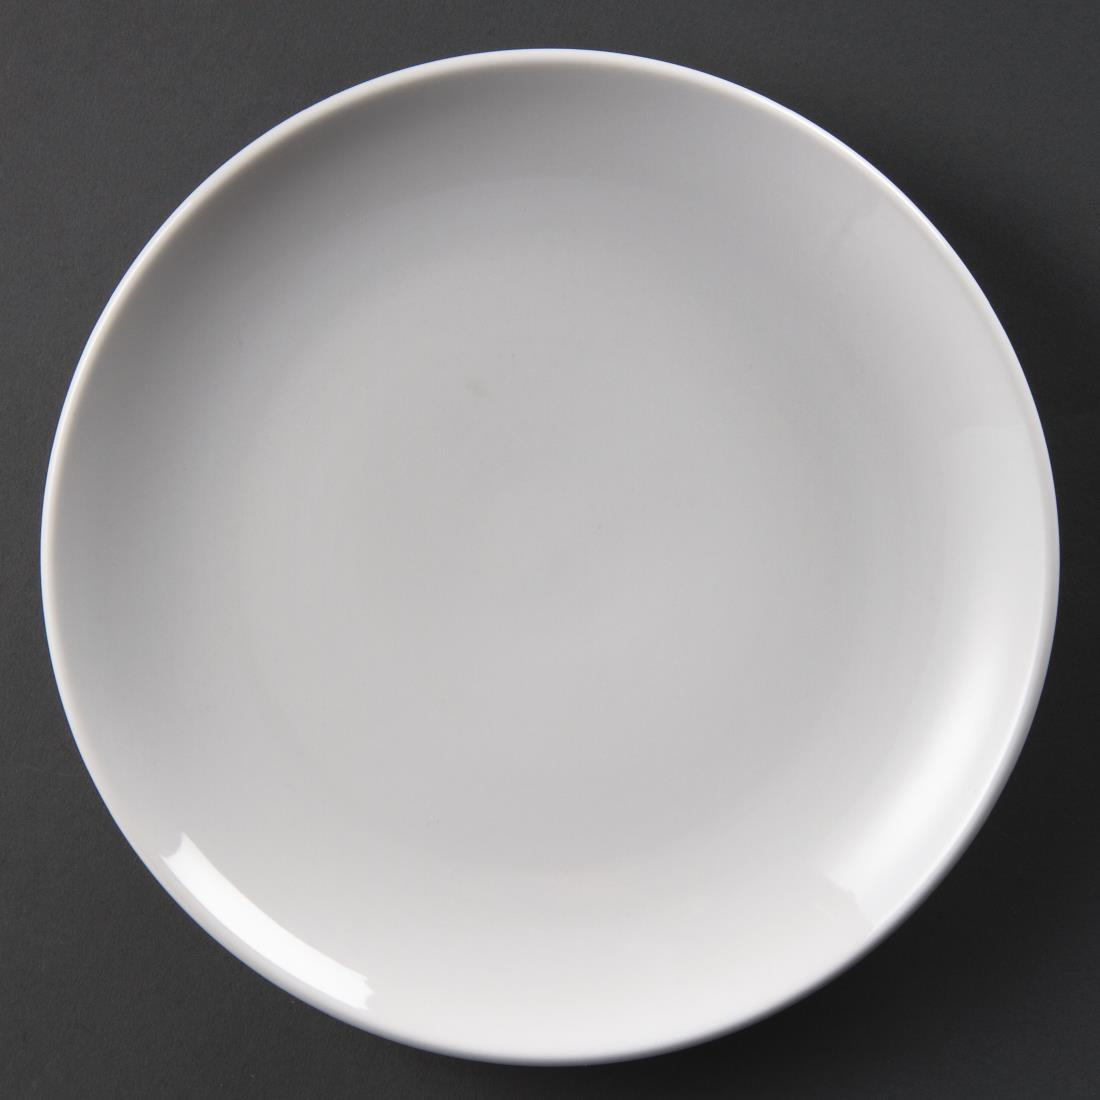 Olympia Whiteware Coupe Plates 230mm